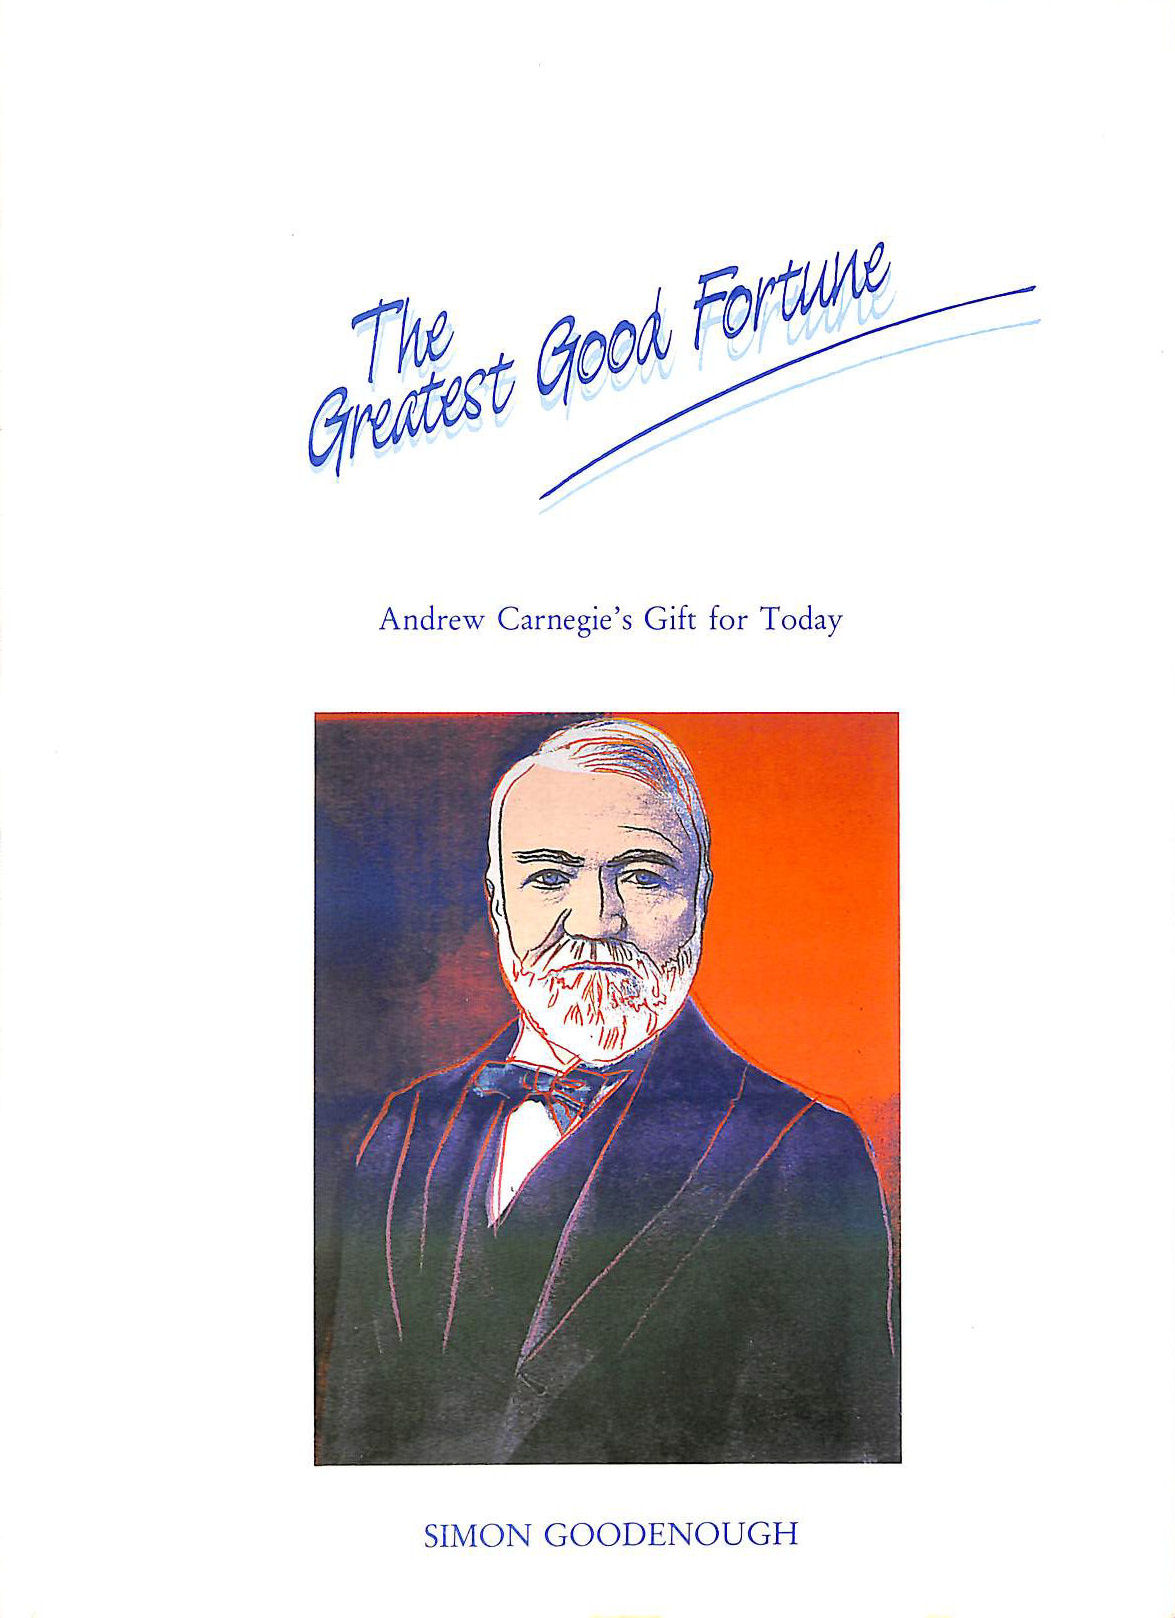 Greatest Good Fortune: Andrew Carnegie's Gift for Today